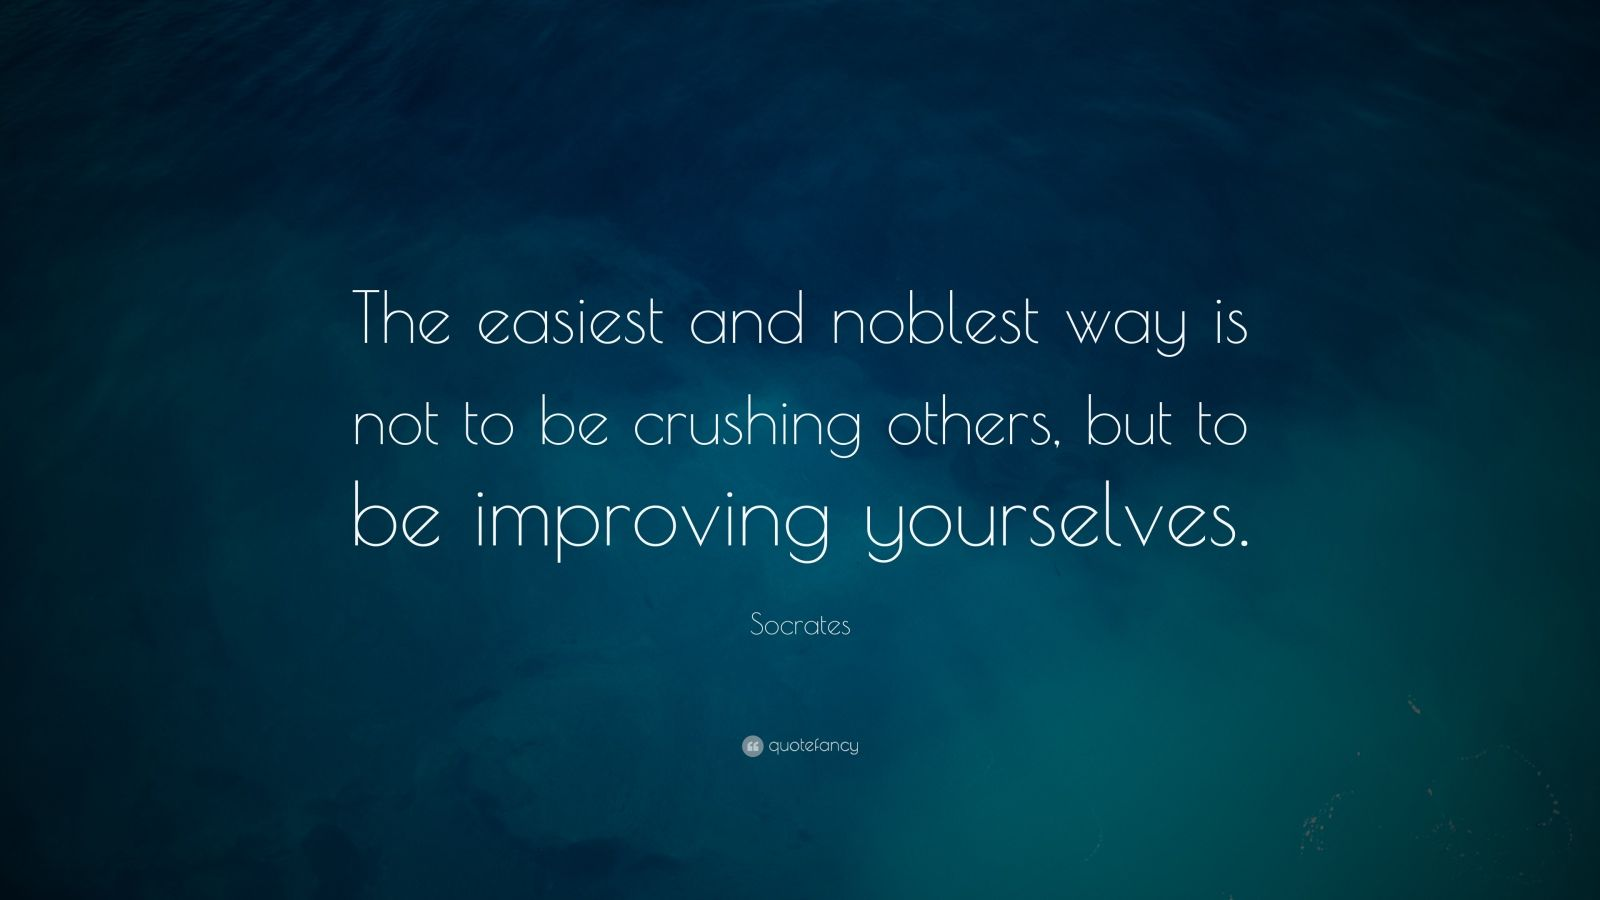 """Socrates Quote: """"The easiest and noblest way is not to be crushing others, but to be improving yourselves. """""""